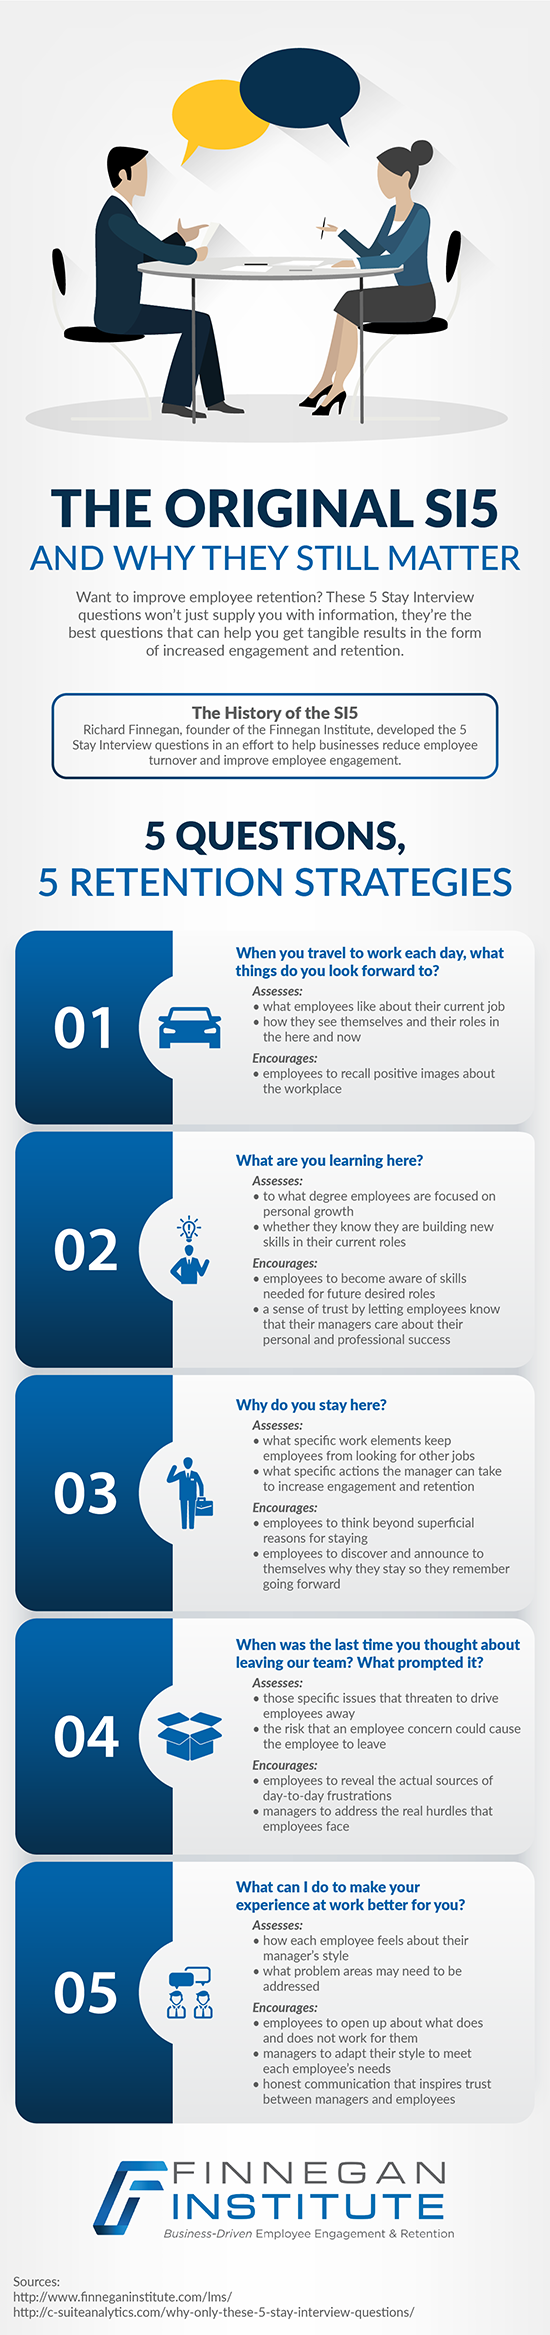 original stay interview questions infographic - small